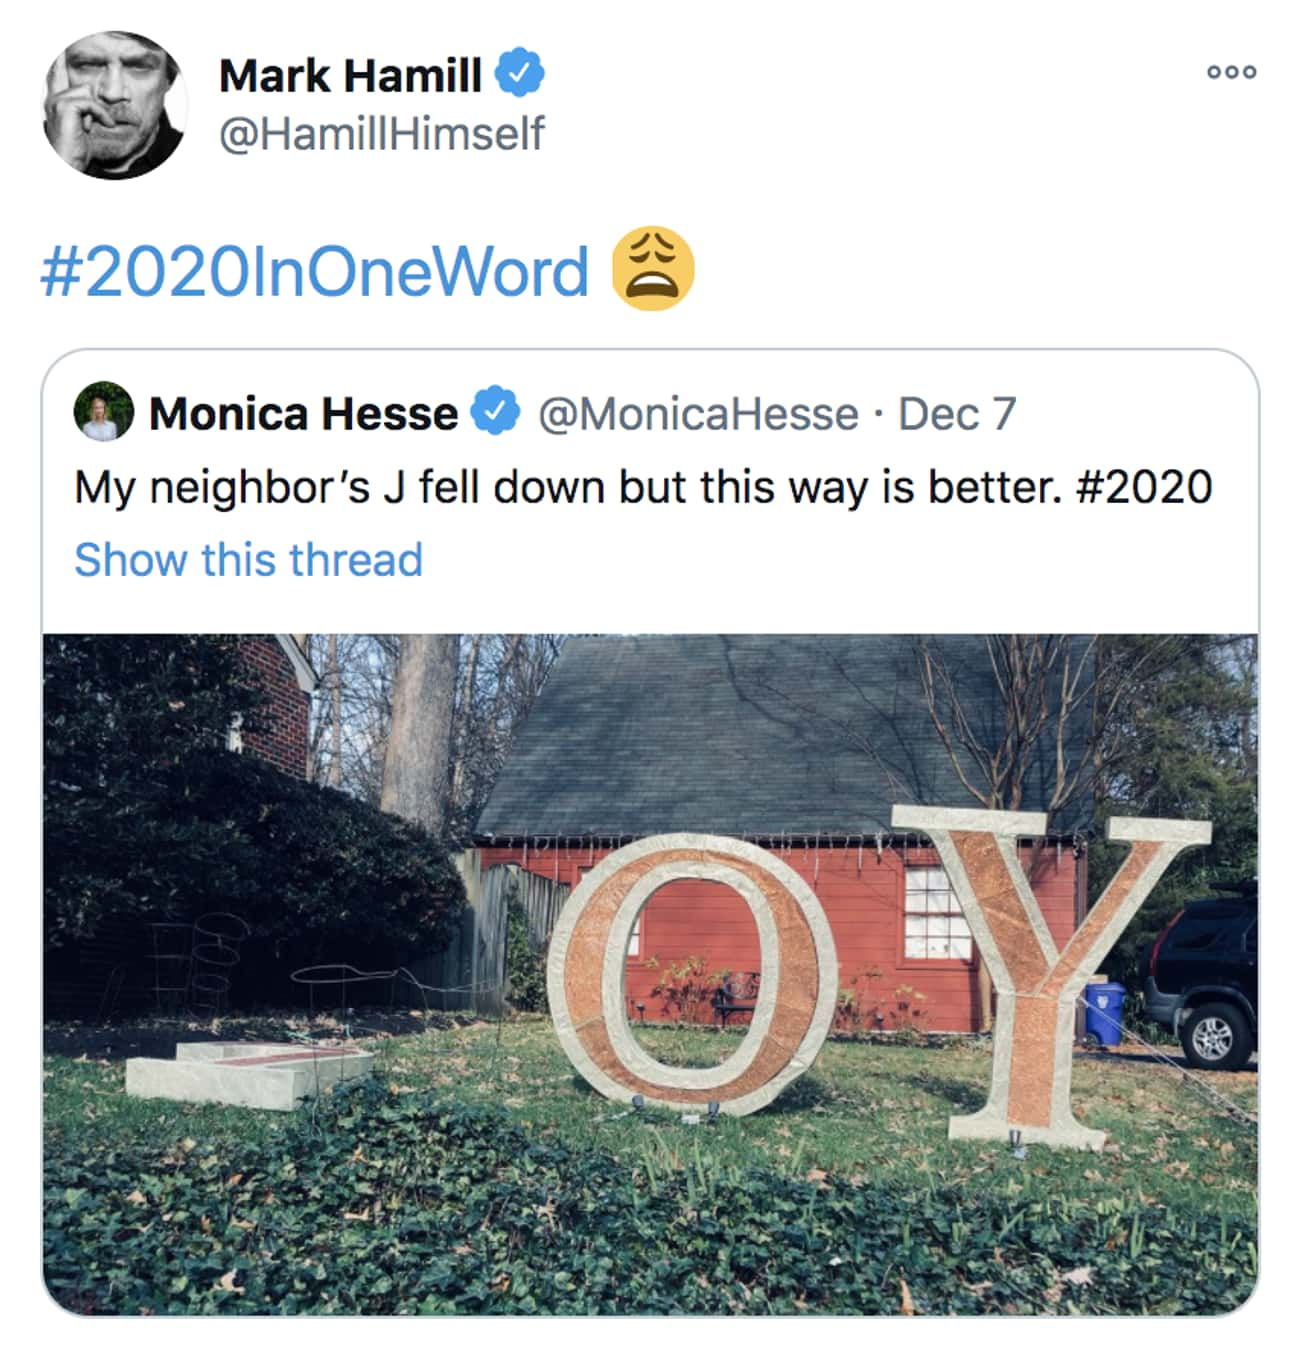 Mark Hamill Sums Up 2020 As 'Joy' With A Silent J